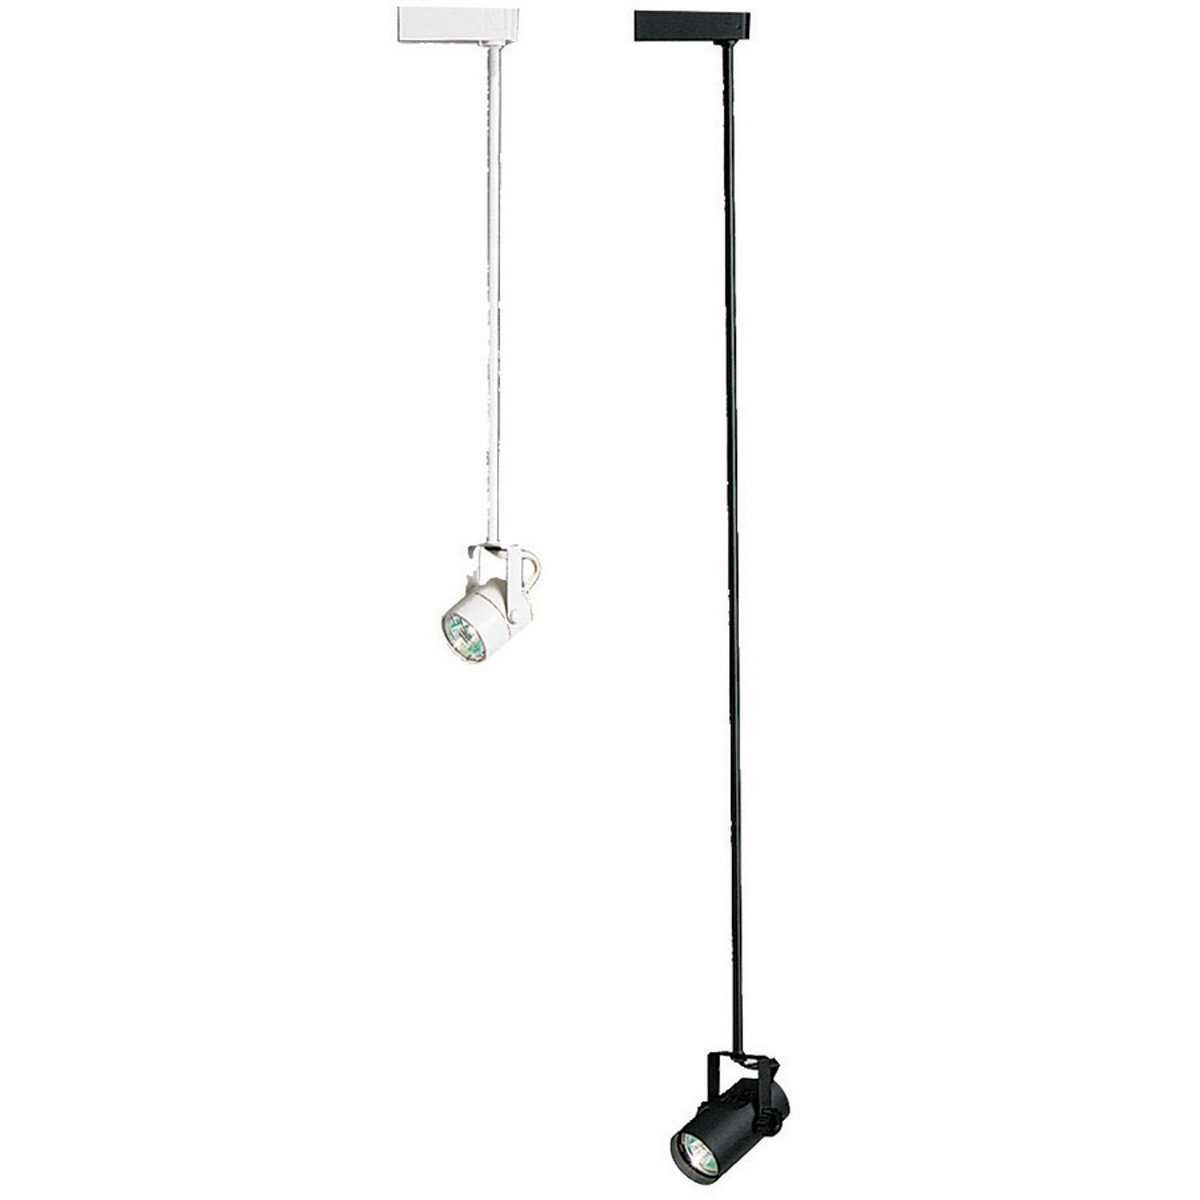 WAC Lighting (X) Extension Rod for Low Voltage Track Heads